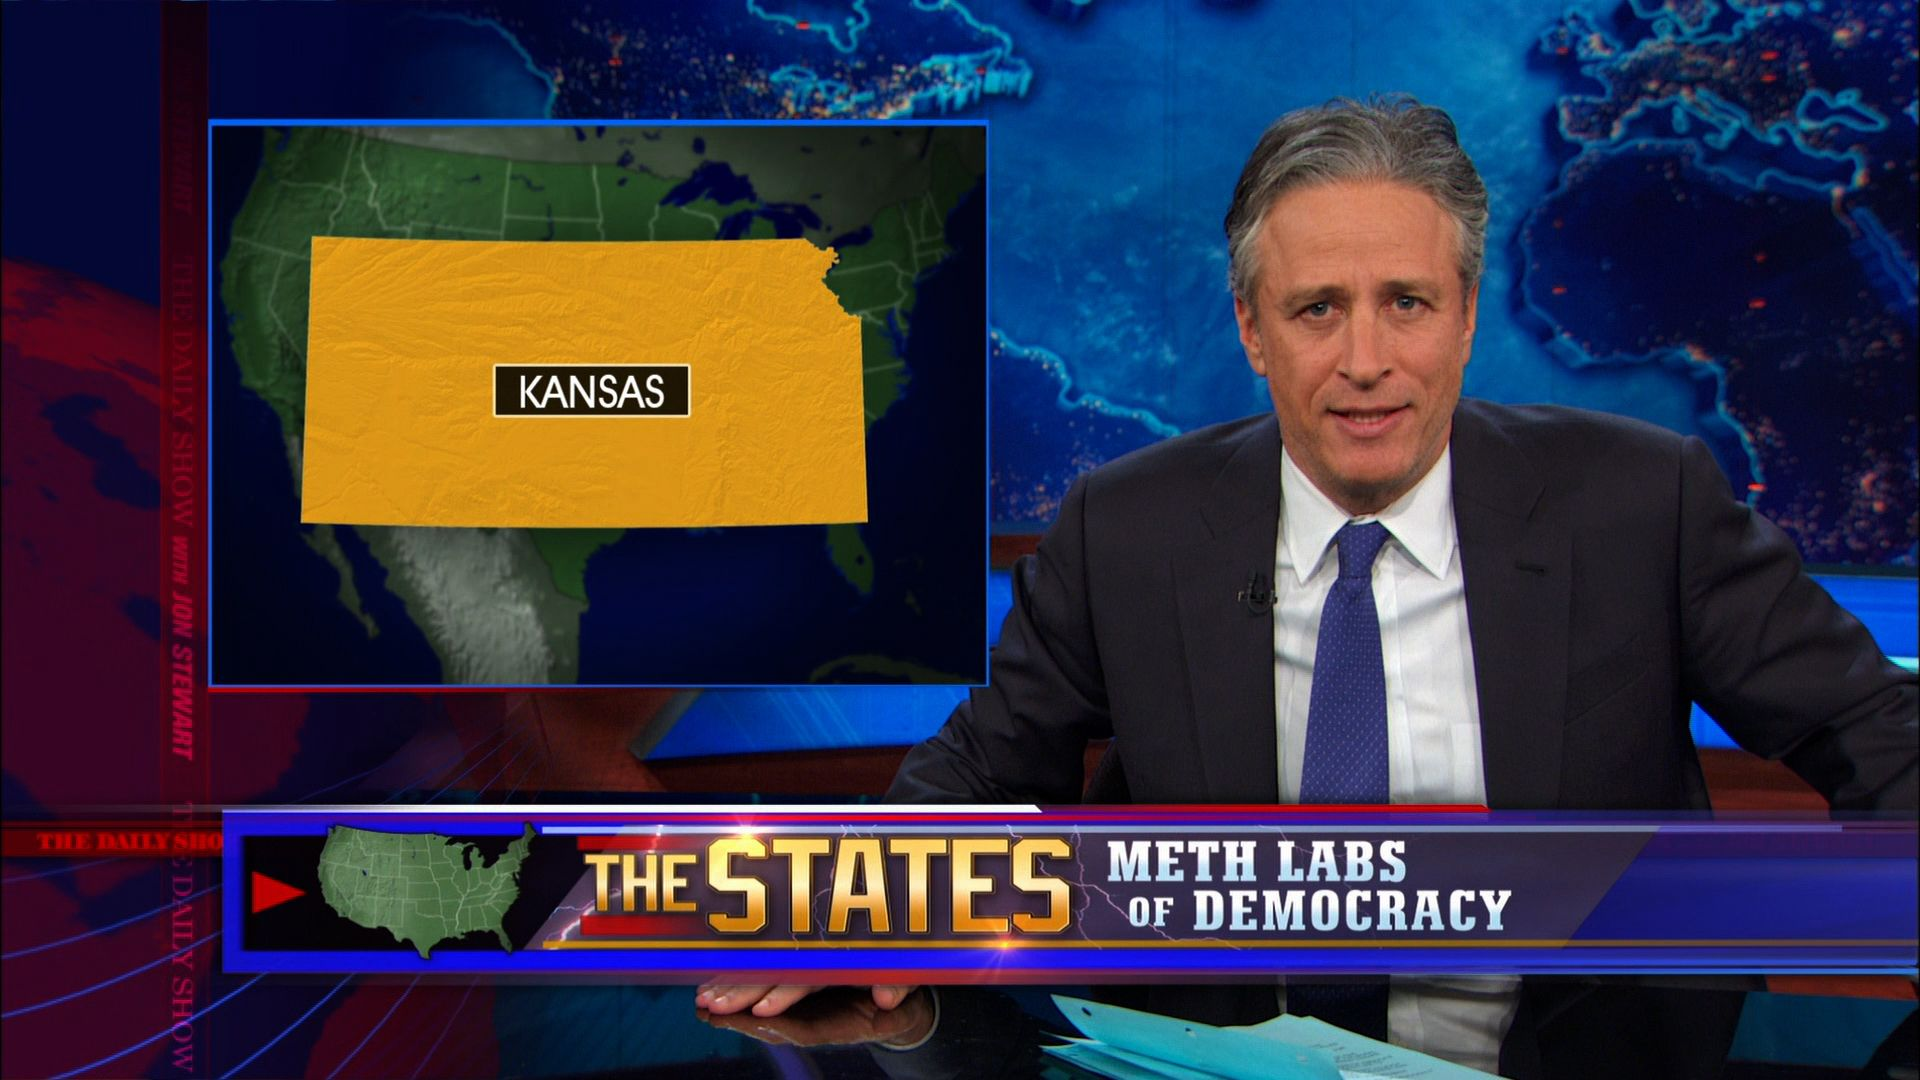 The States: Meth Labs of Democracy - The Daily Show with Jon Stewart (Video Clip)